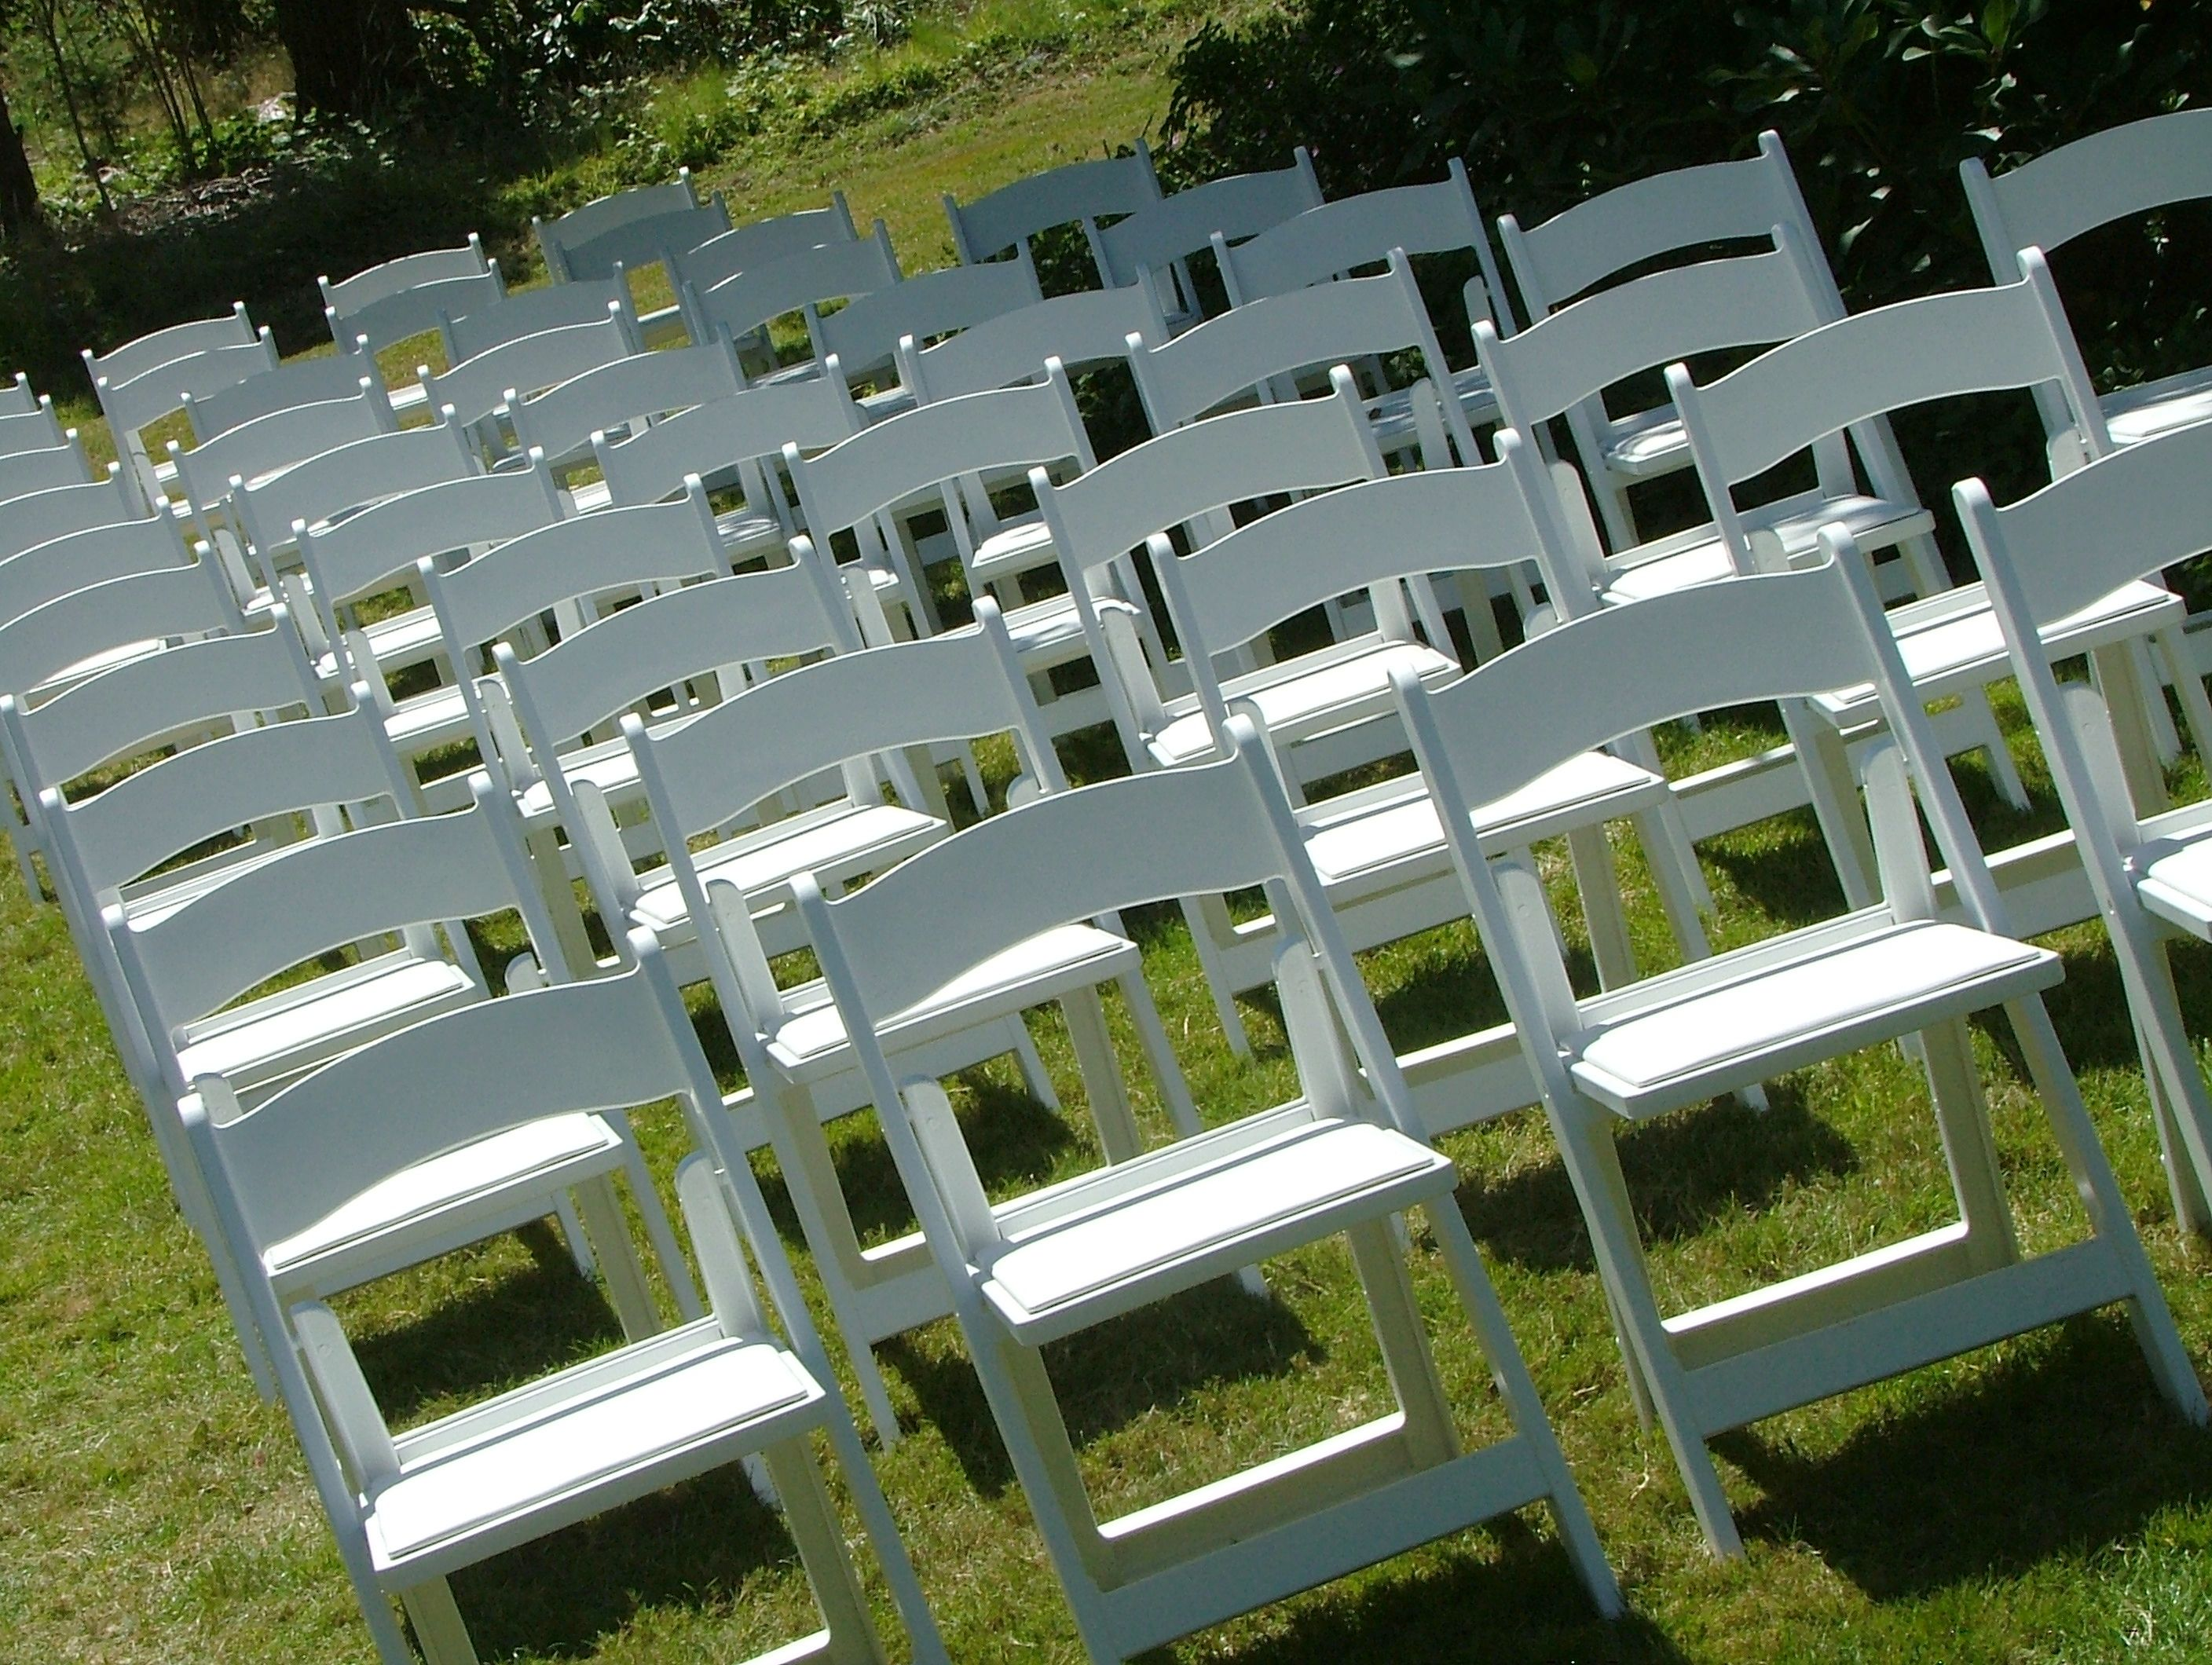 Google Image Result for //upload.wikimedia.org/wikipedia/commons/6/6a/Outdoor_Wedding_Chairs_2816px.jpg & Google Image Result for http://upload.wikimedia.org/wikipedia ...